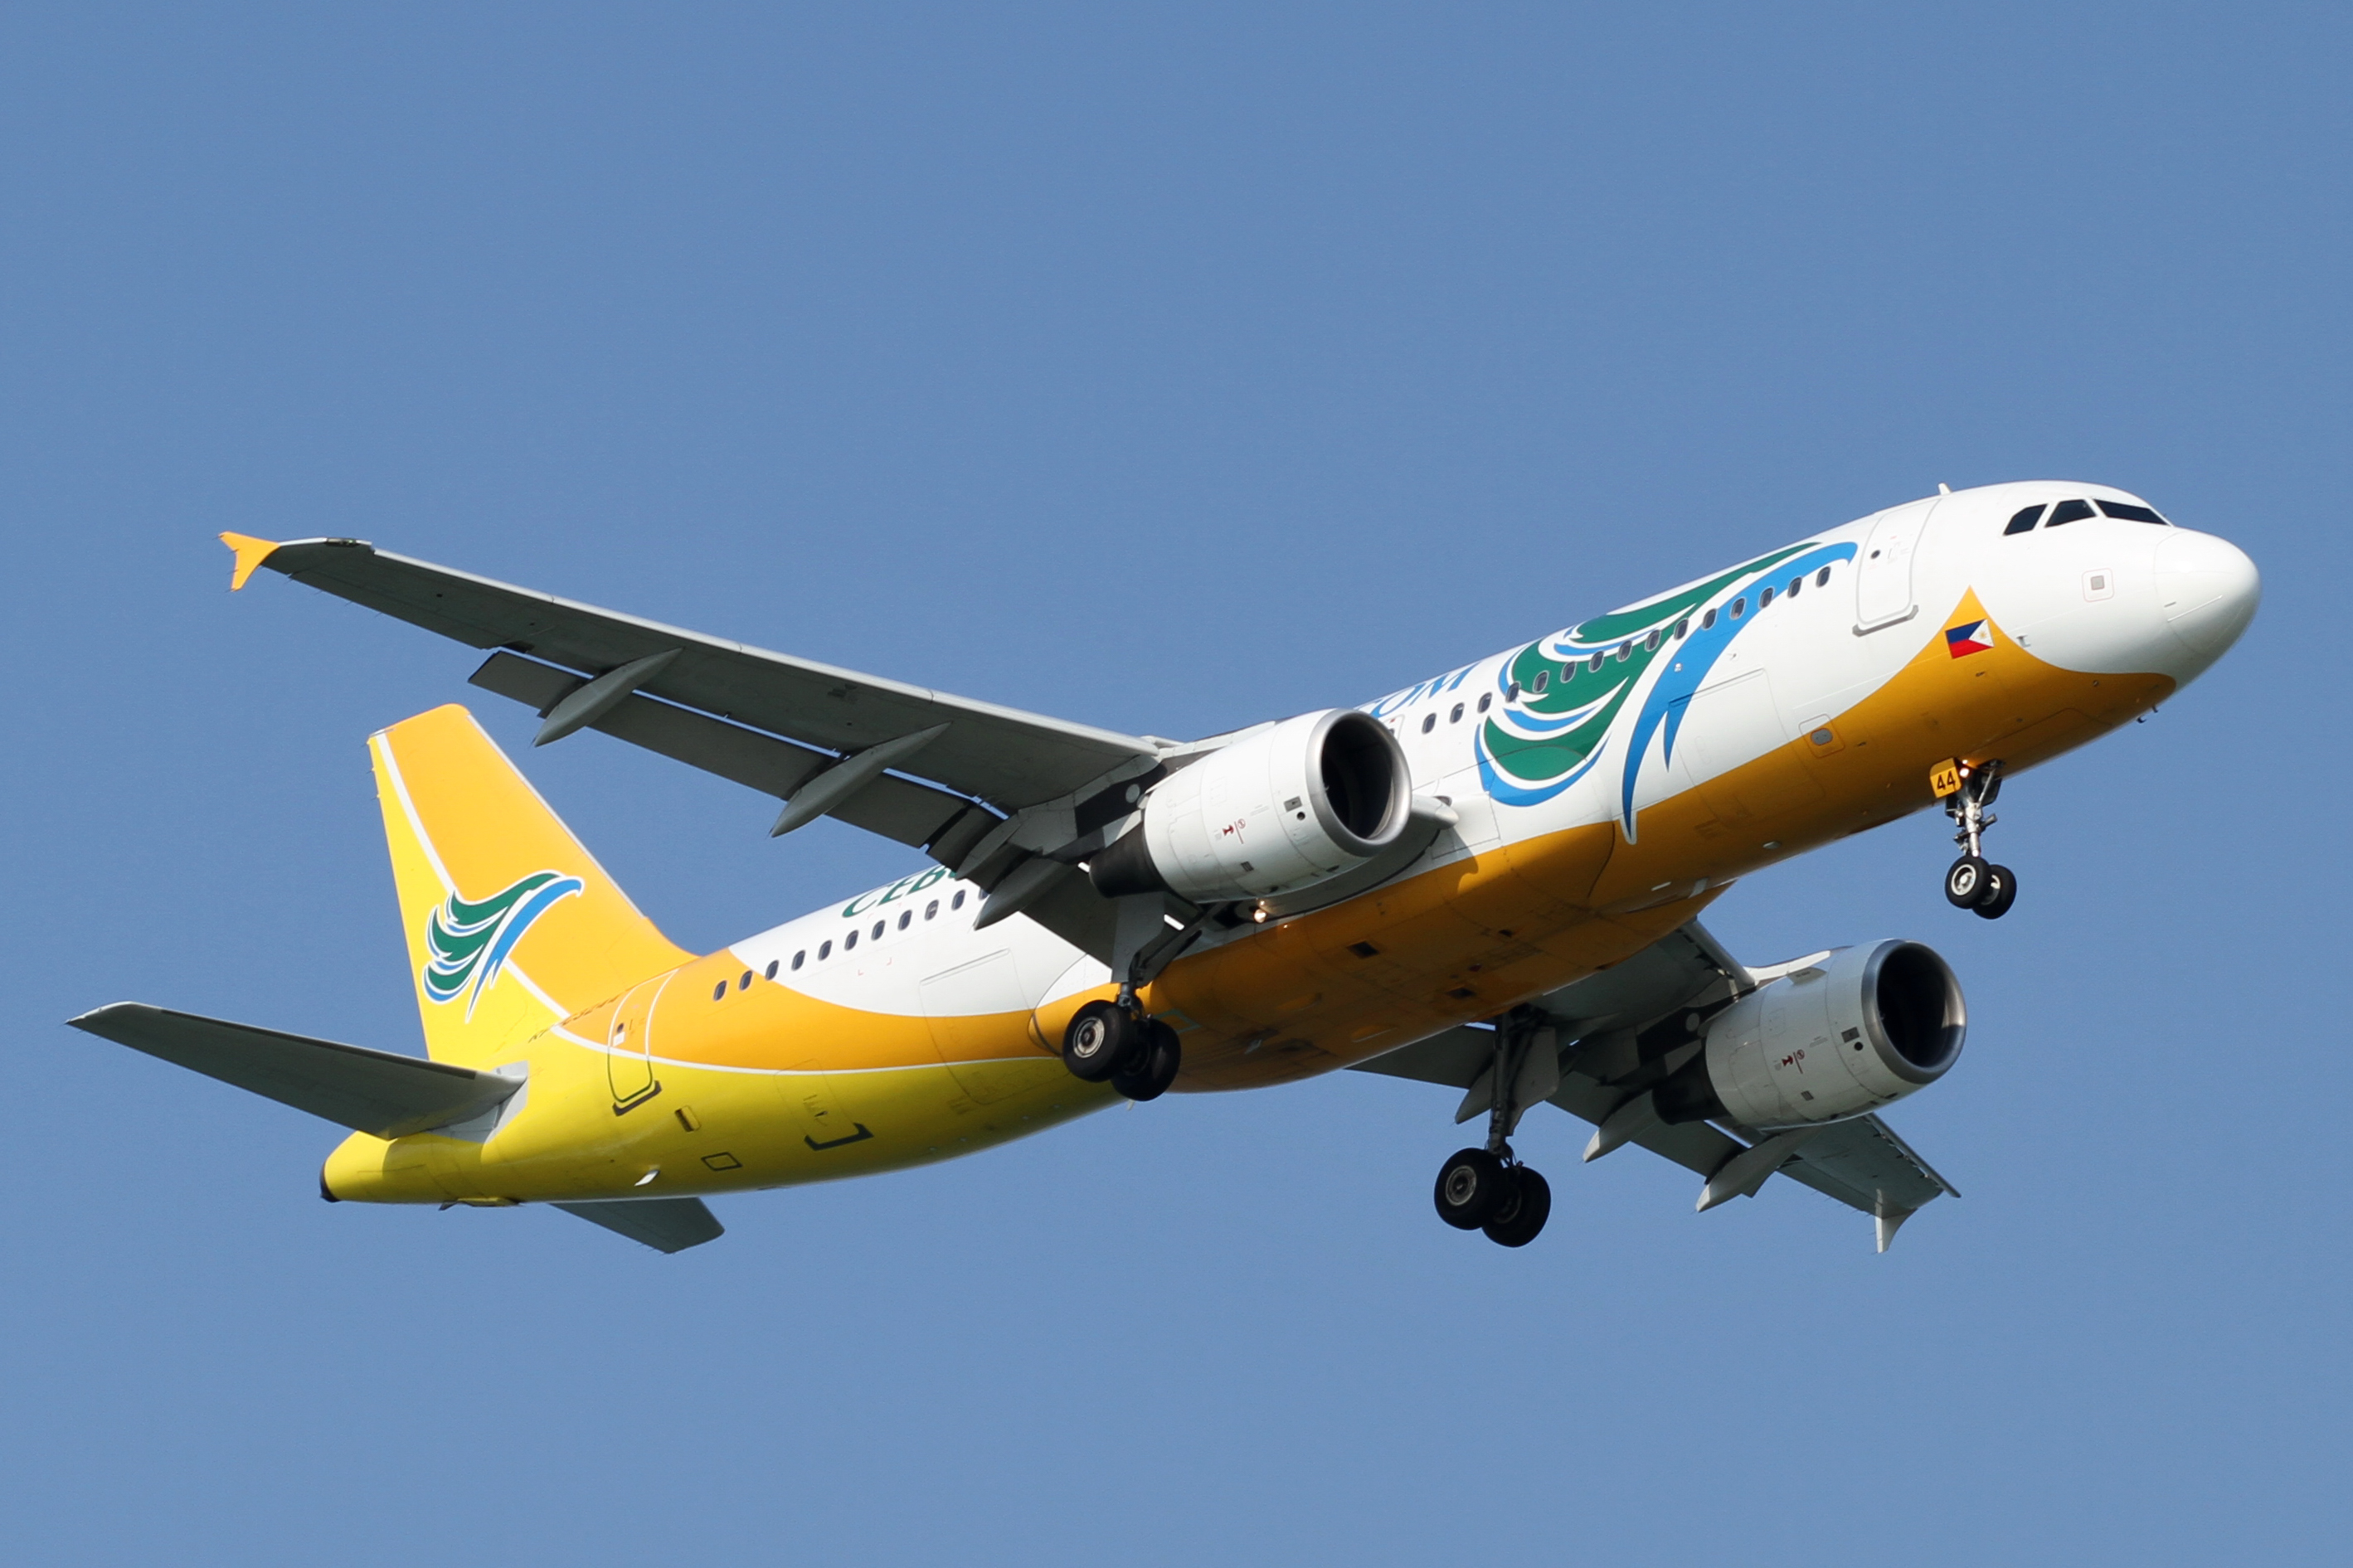 cebu pacific air Looking for cebu pacific air flights you're at the right place we are offering  interesting deals on cebu pacific air tickets book your tickets today to grab these .